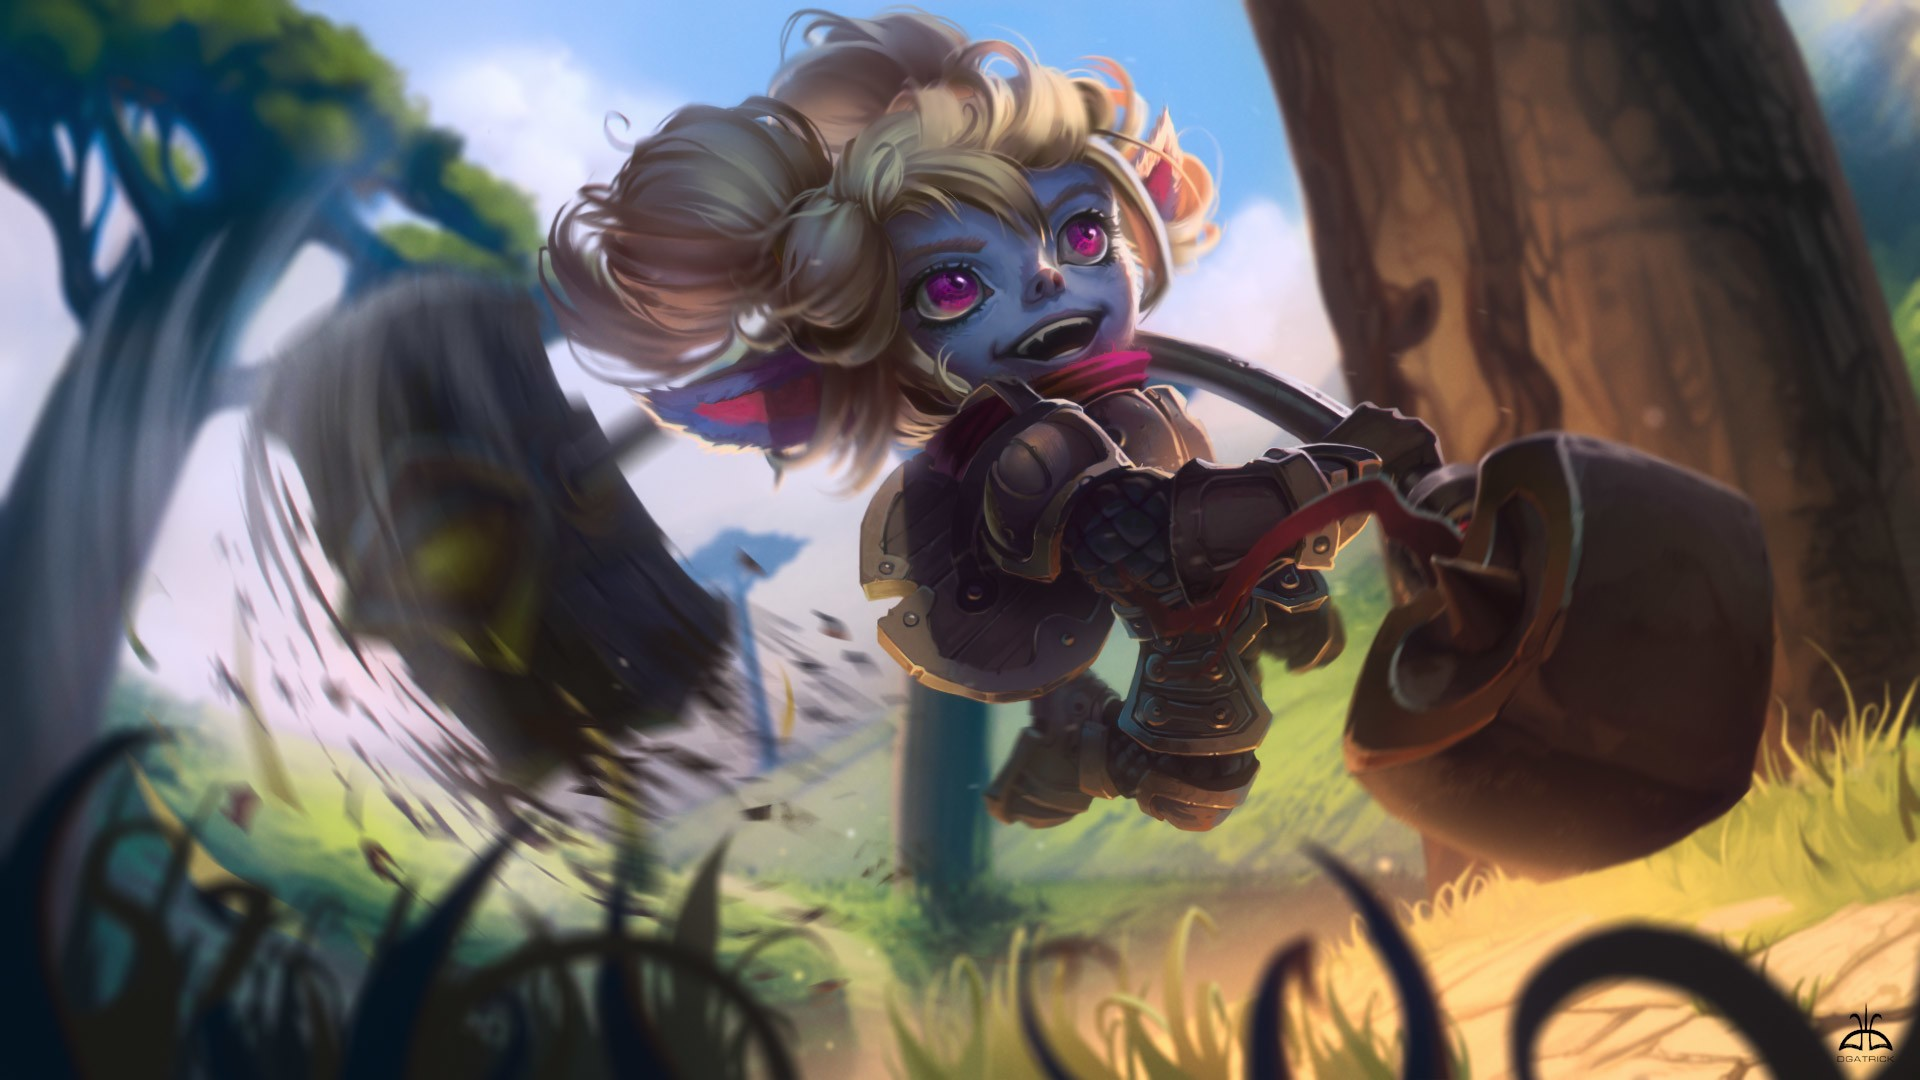 poppy fan art league of legends wallpapers